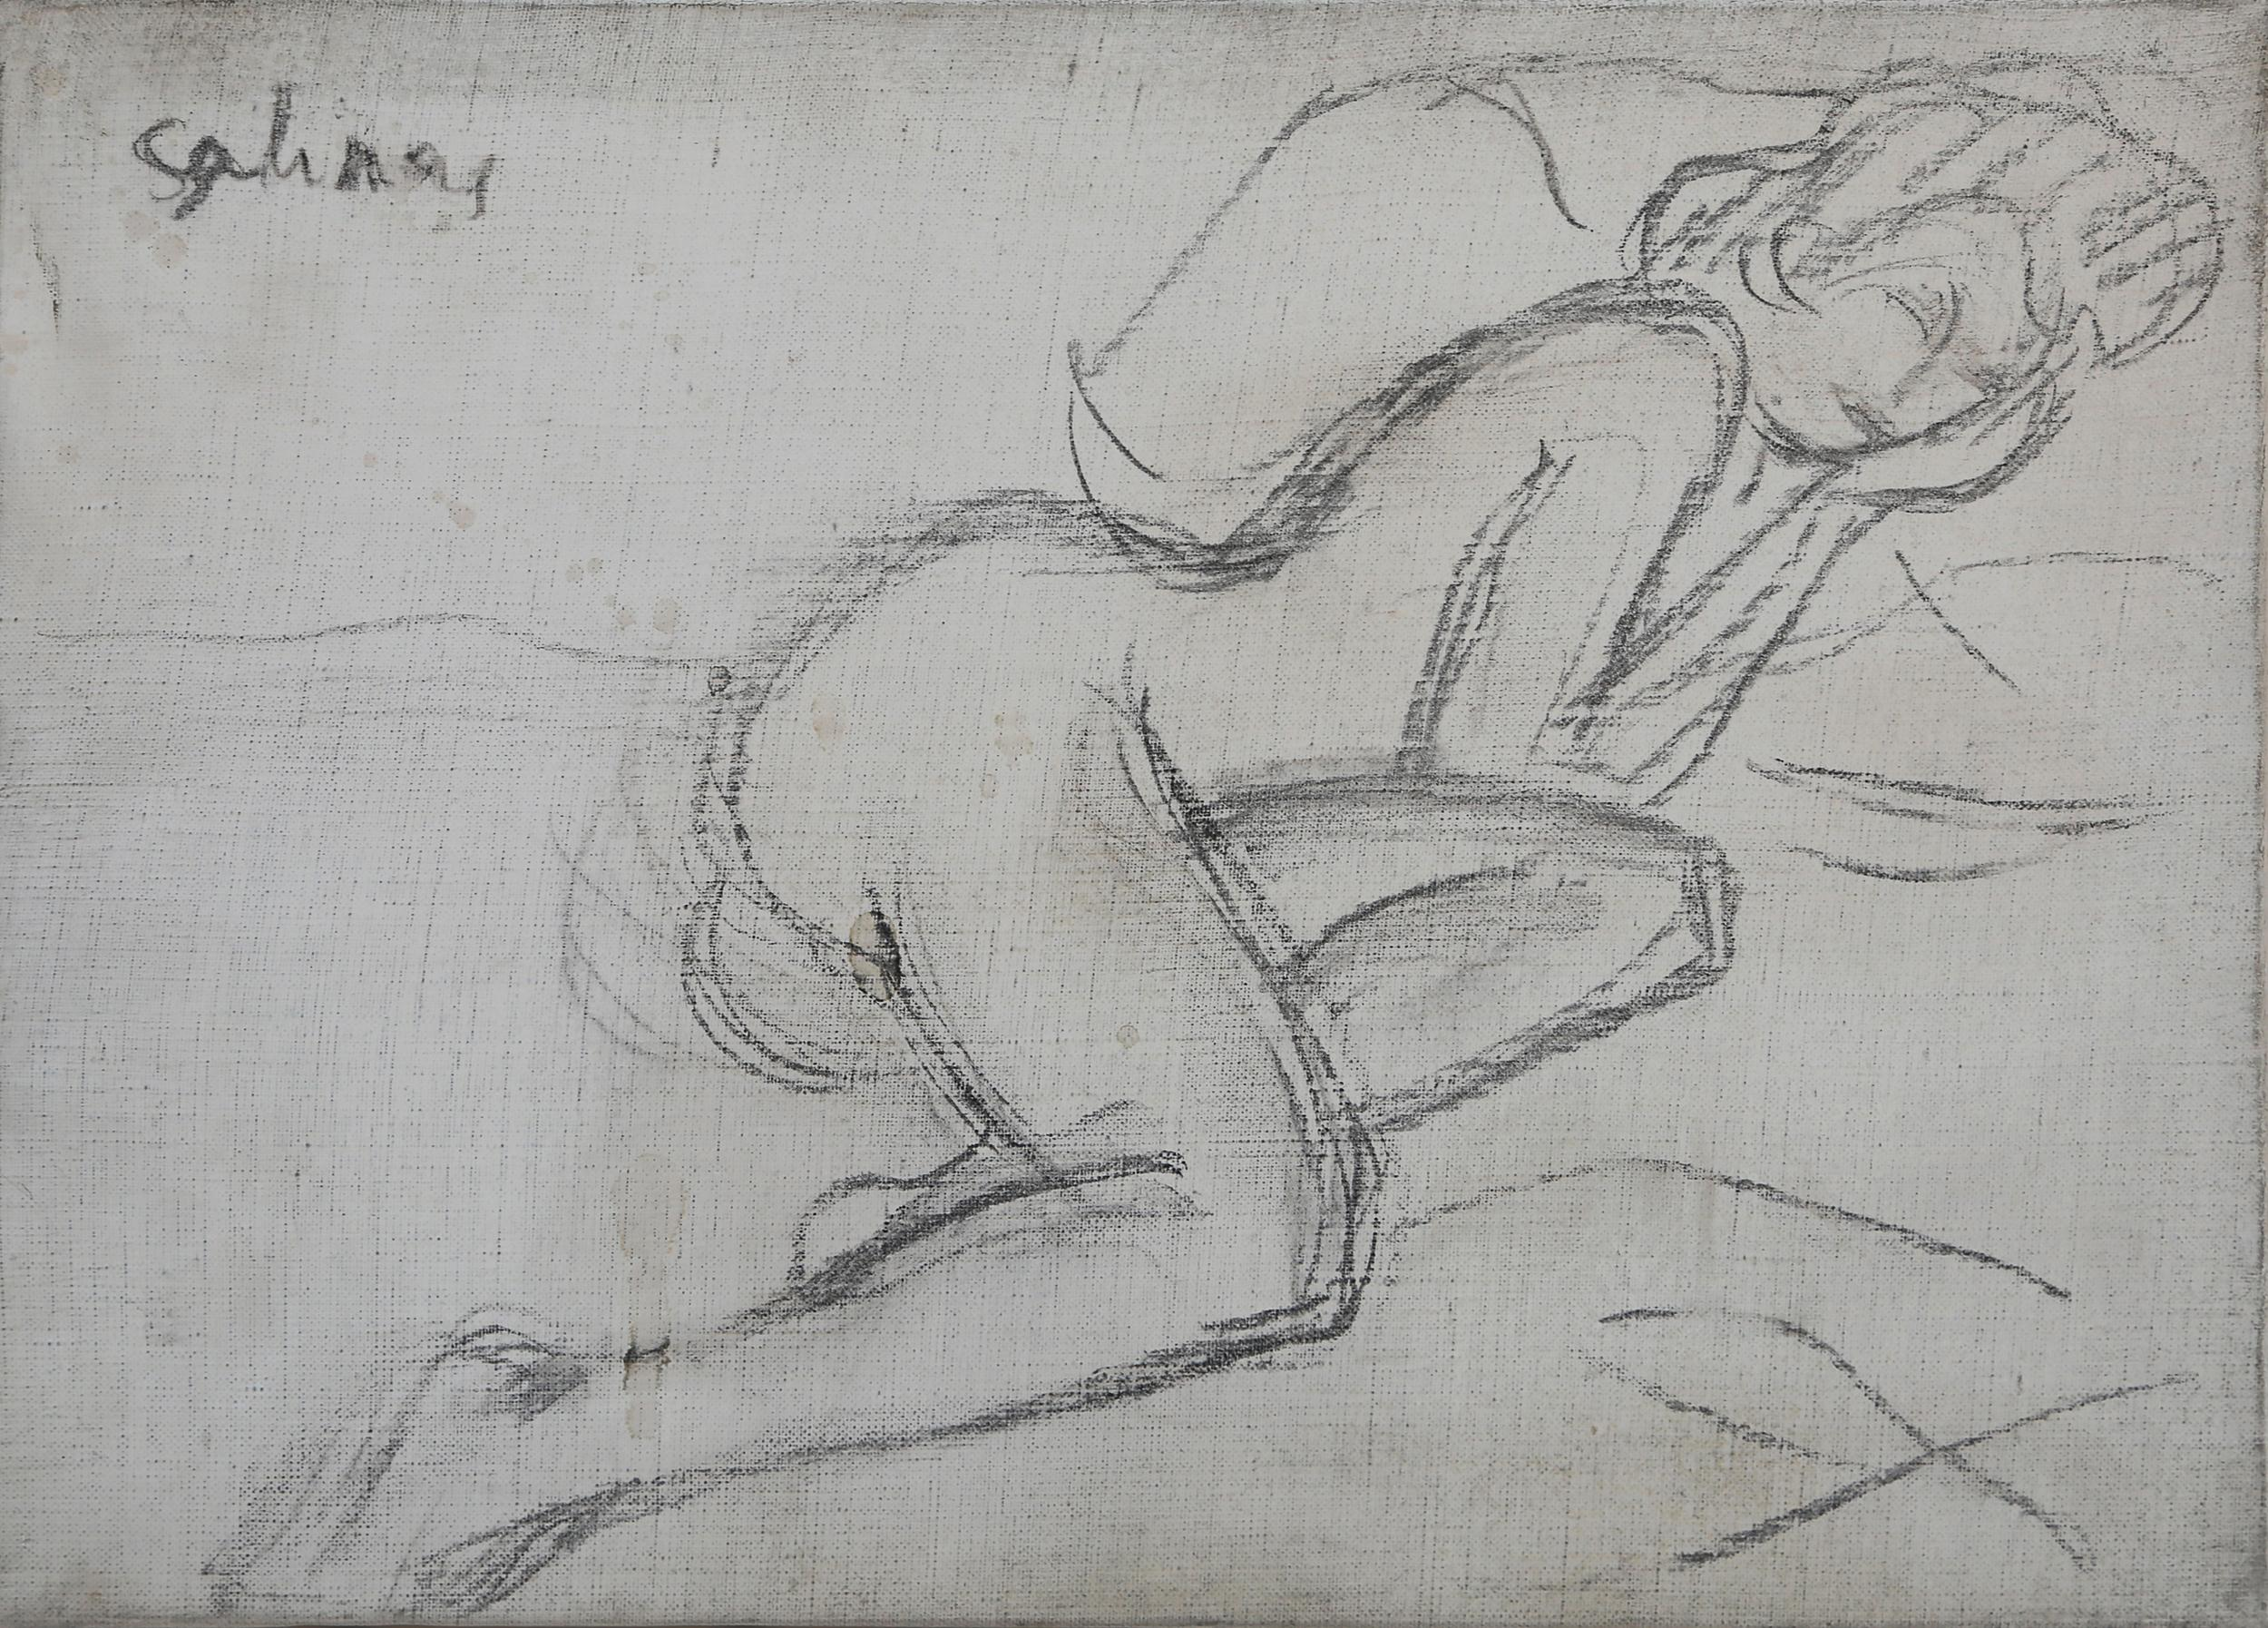 Laurent Marcel Salinas, Lounging Nude on Pillow (1001), Graphite on Canvas